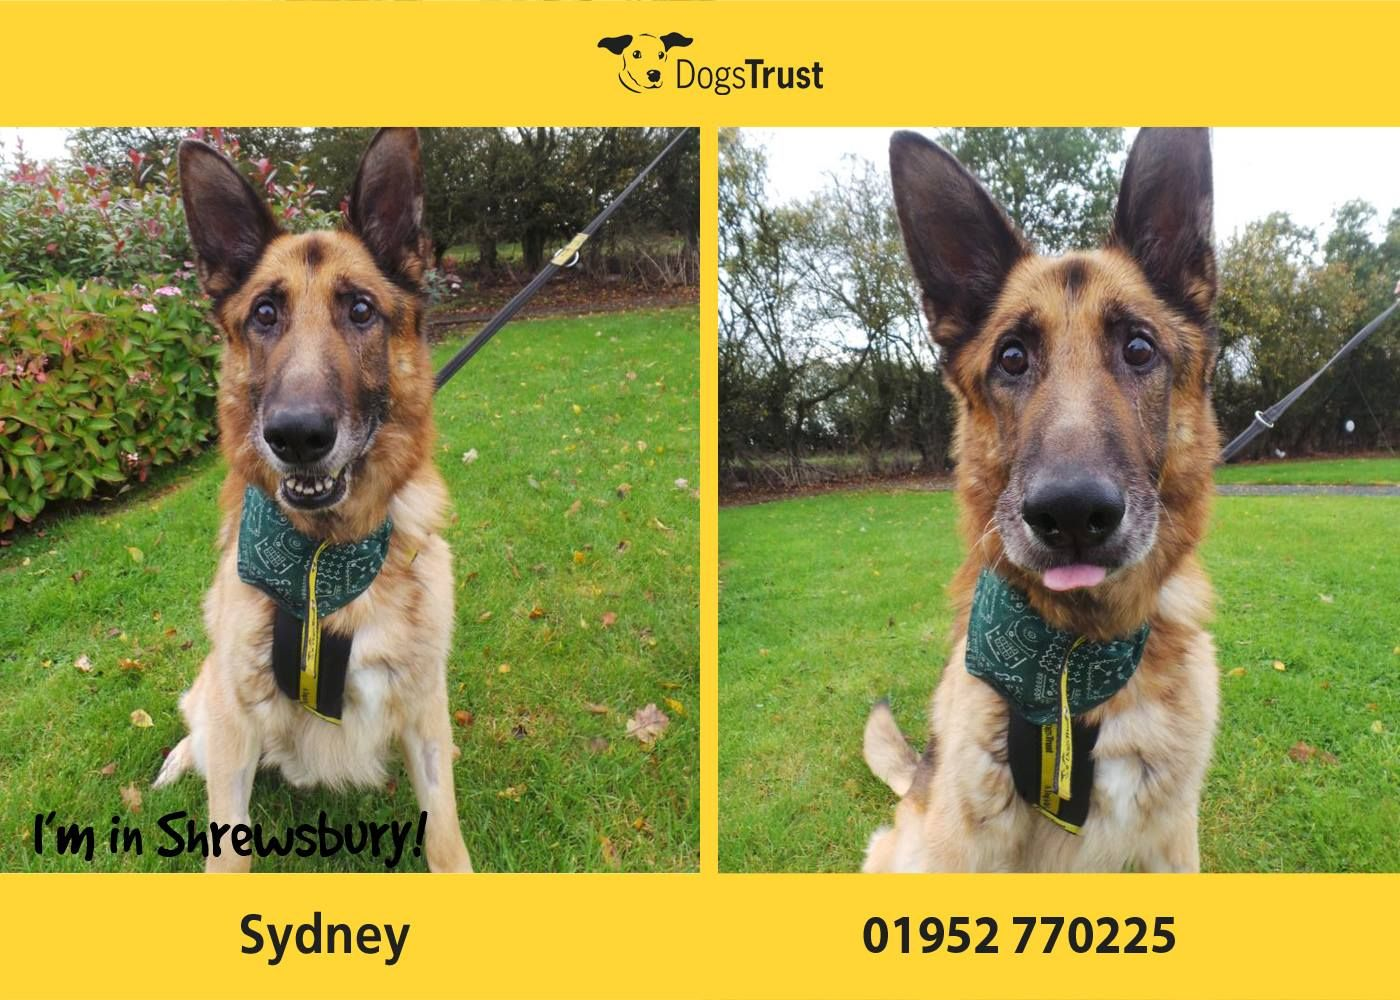 Sydney Is A Special Chap At Dogs Trust Shrewsbury Who Needs A